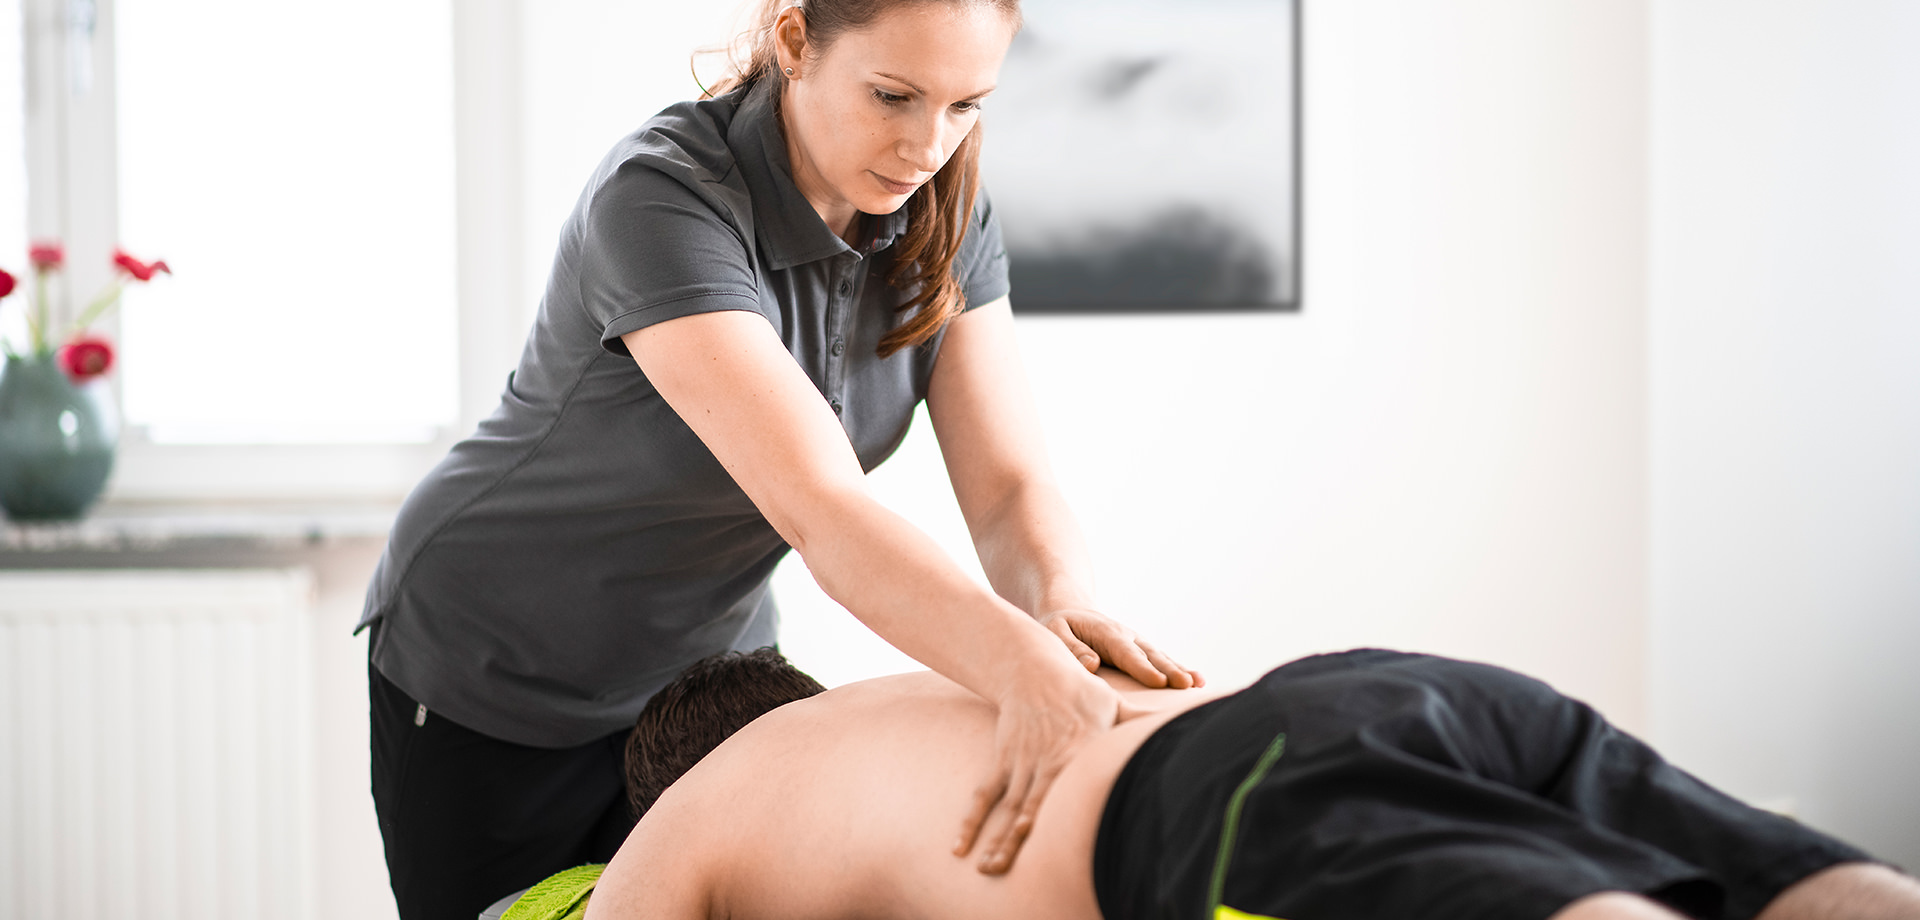 Physiotherapie in Kassel bei sanmova